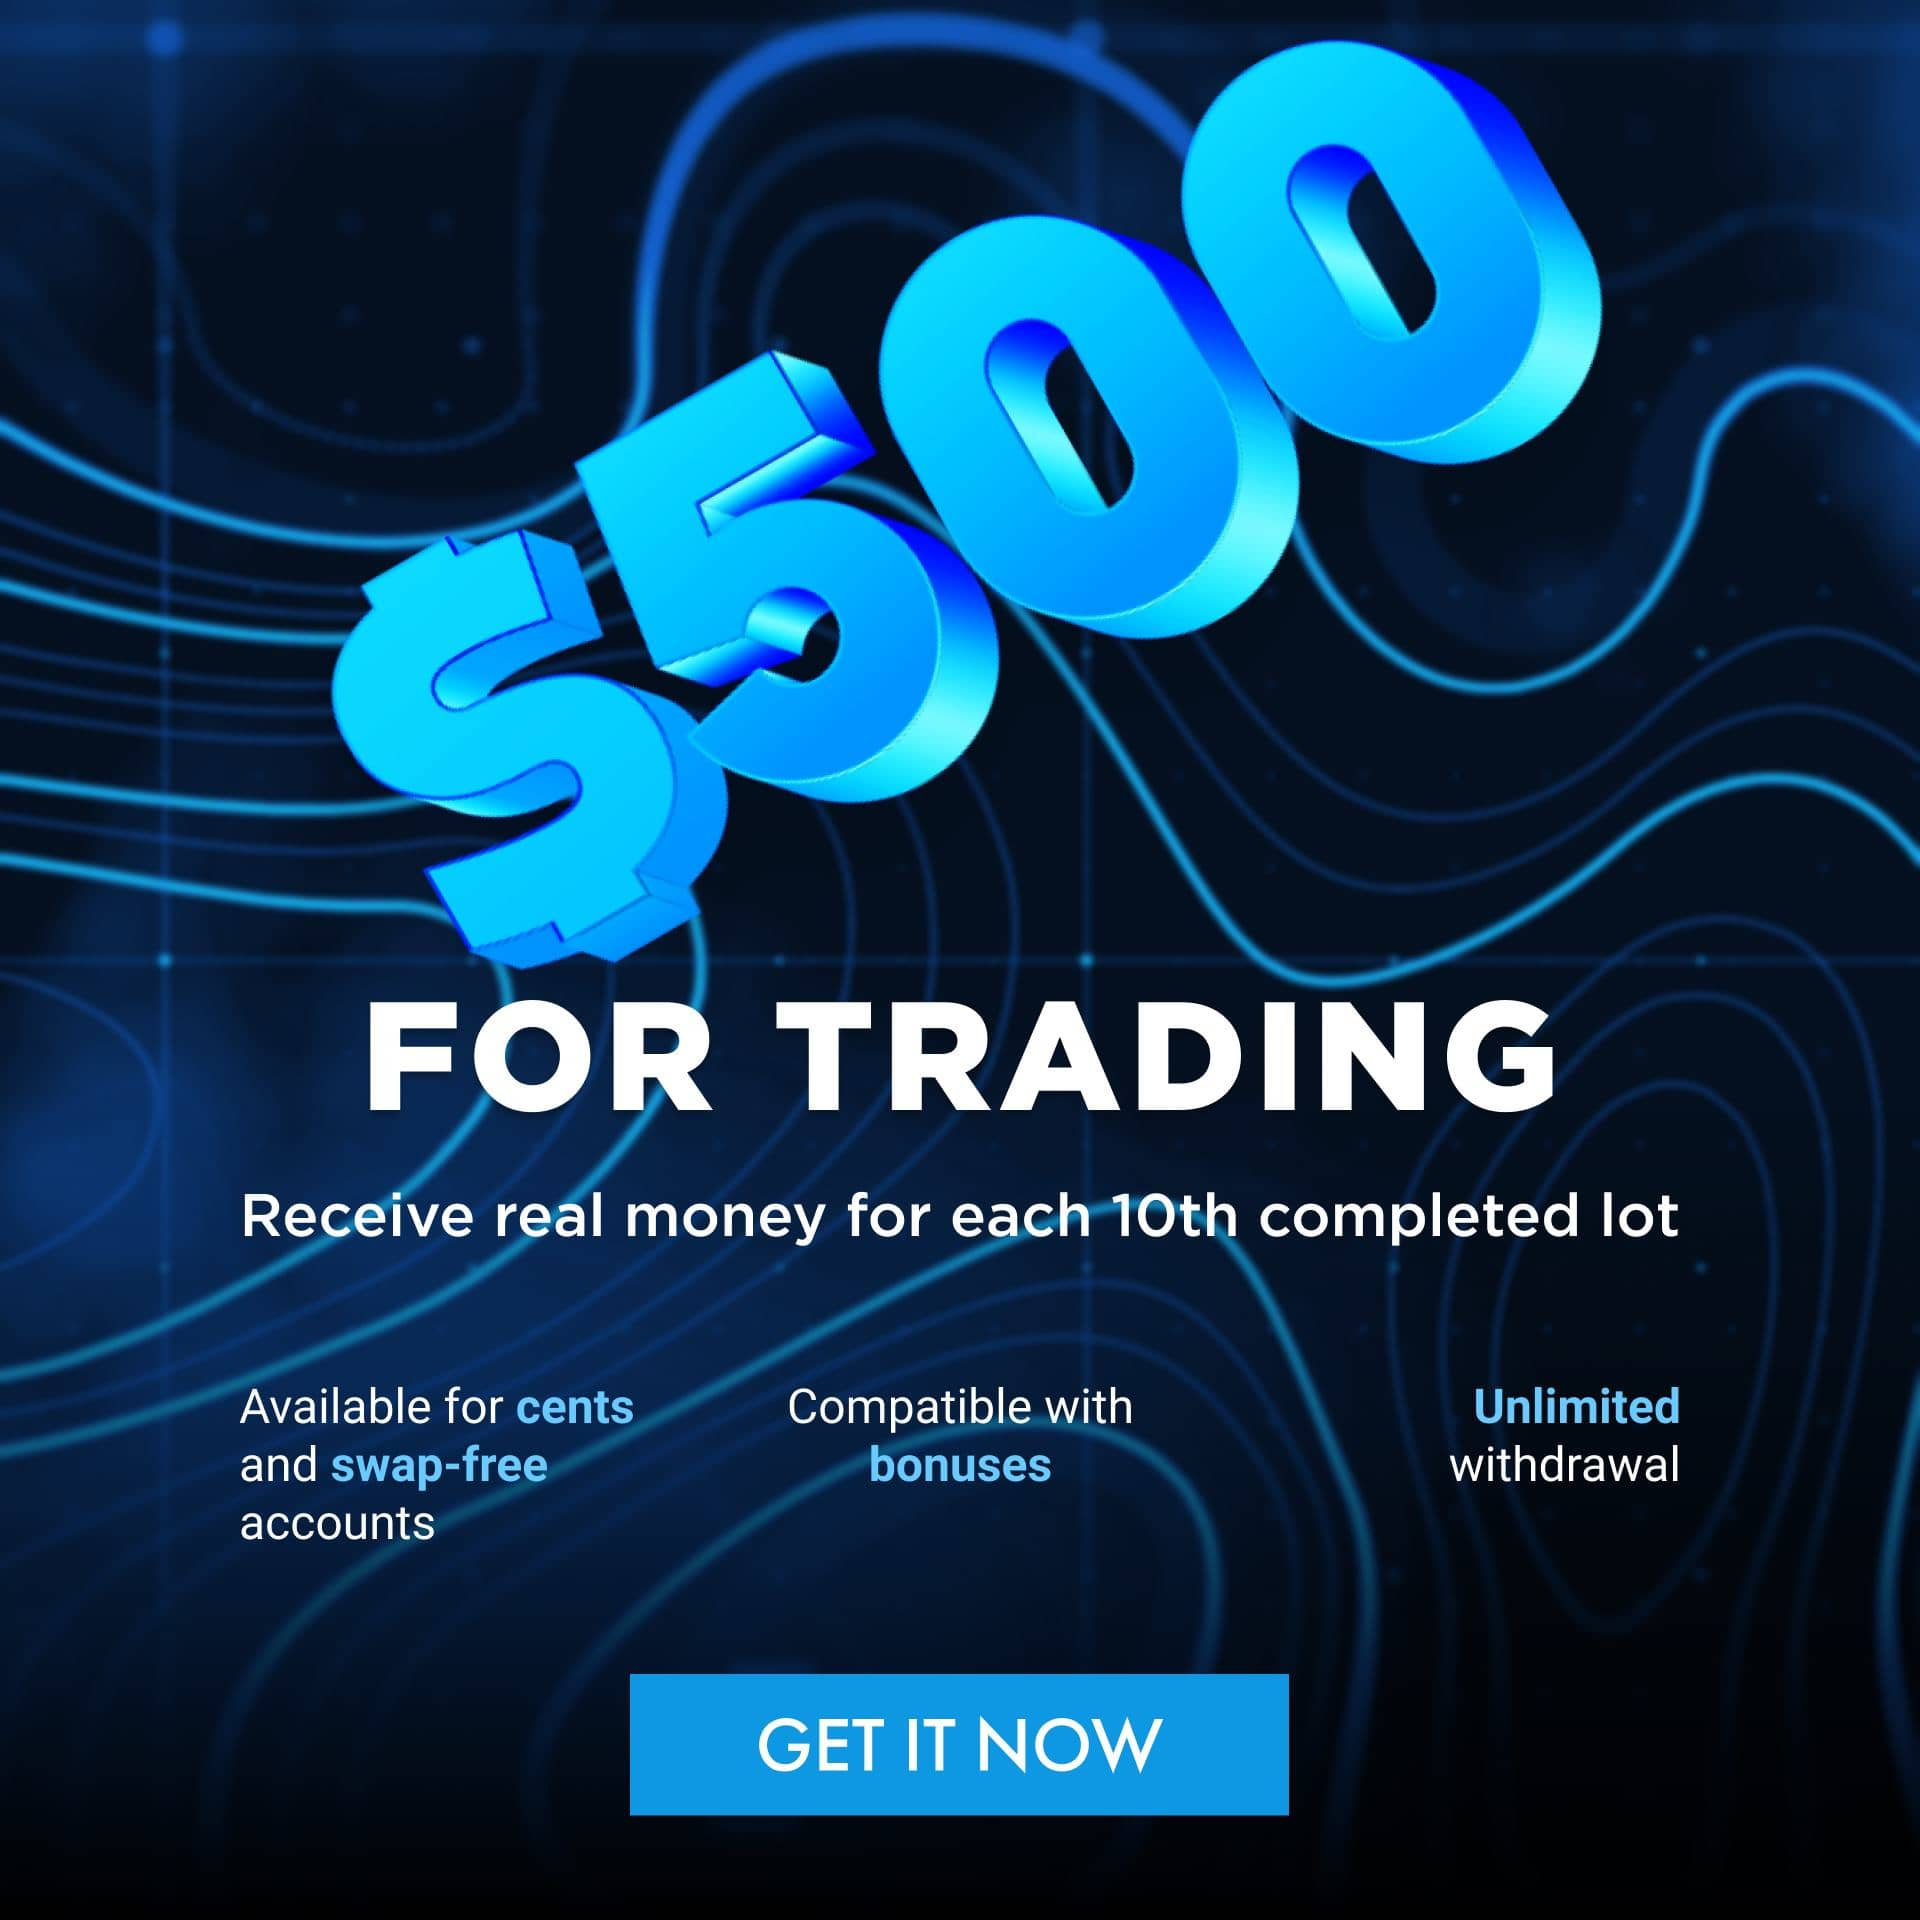 $500 FOR TRADING